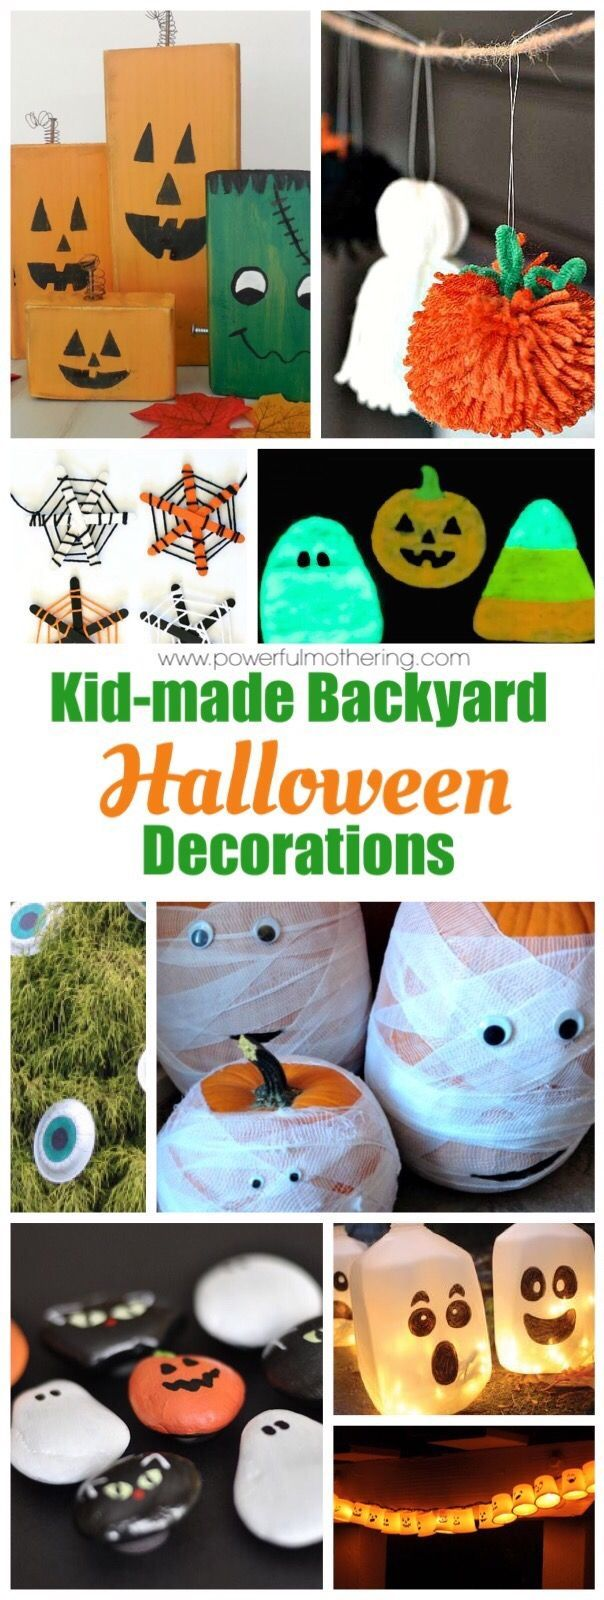 Do You Decorate Your Backyard? Let The Kids Help With